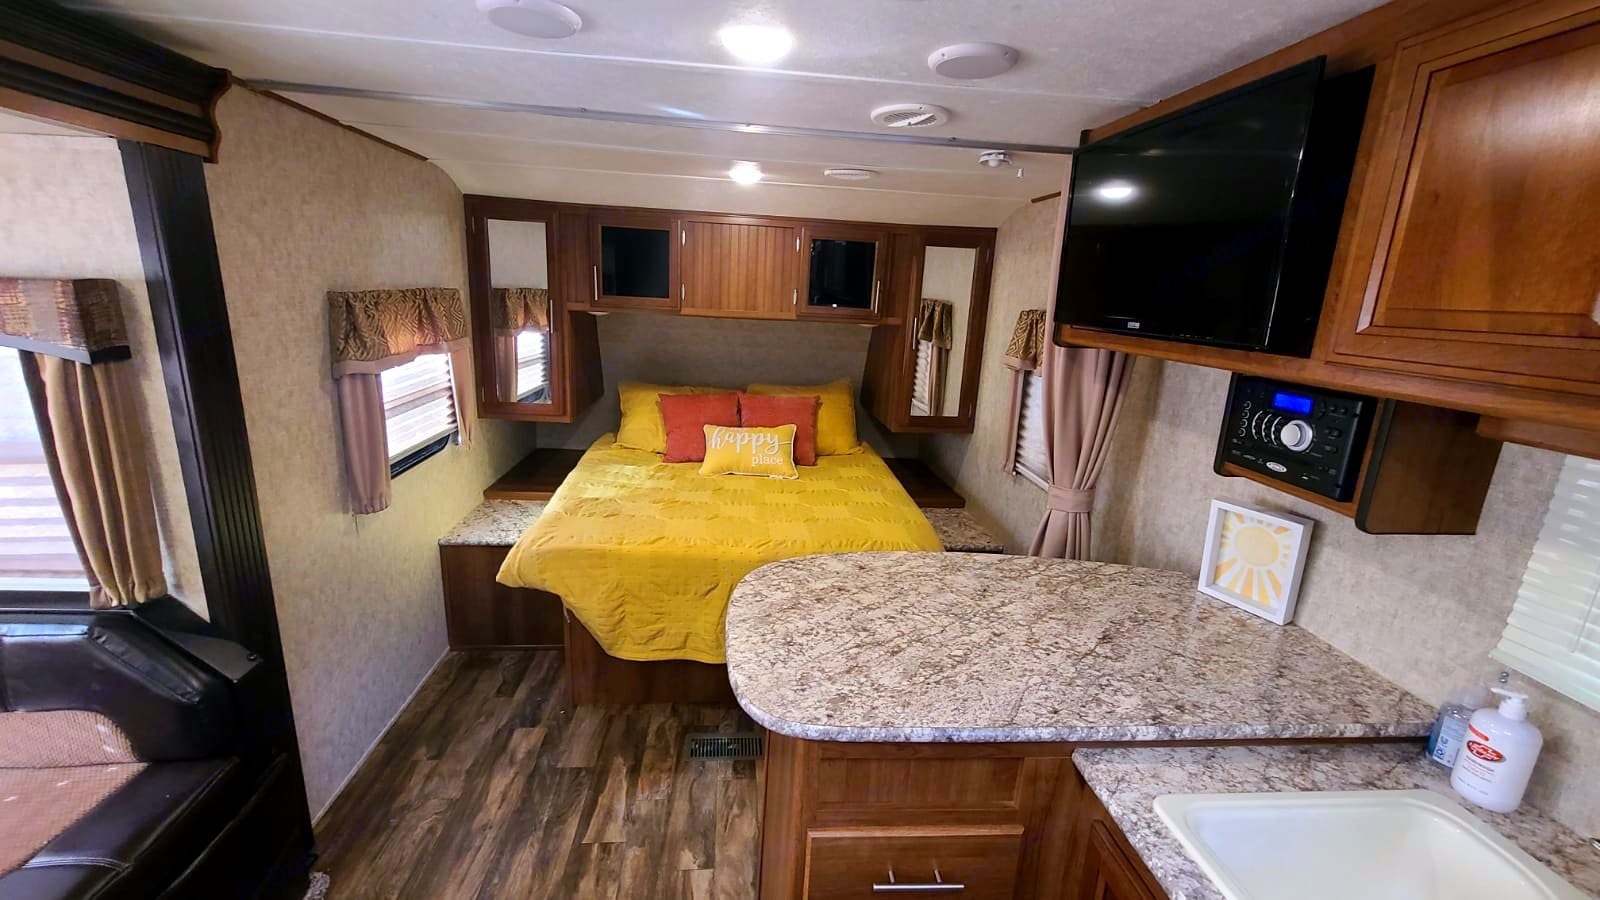 Spacious Bedroom, great for relaxing after a long day of adventure!. Forest River Tracer 2017